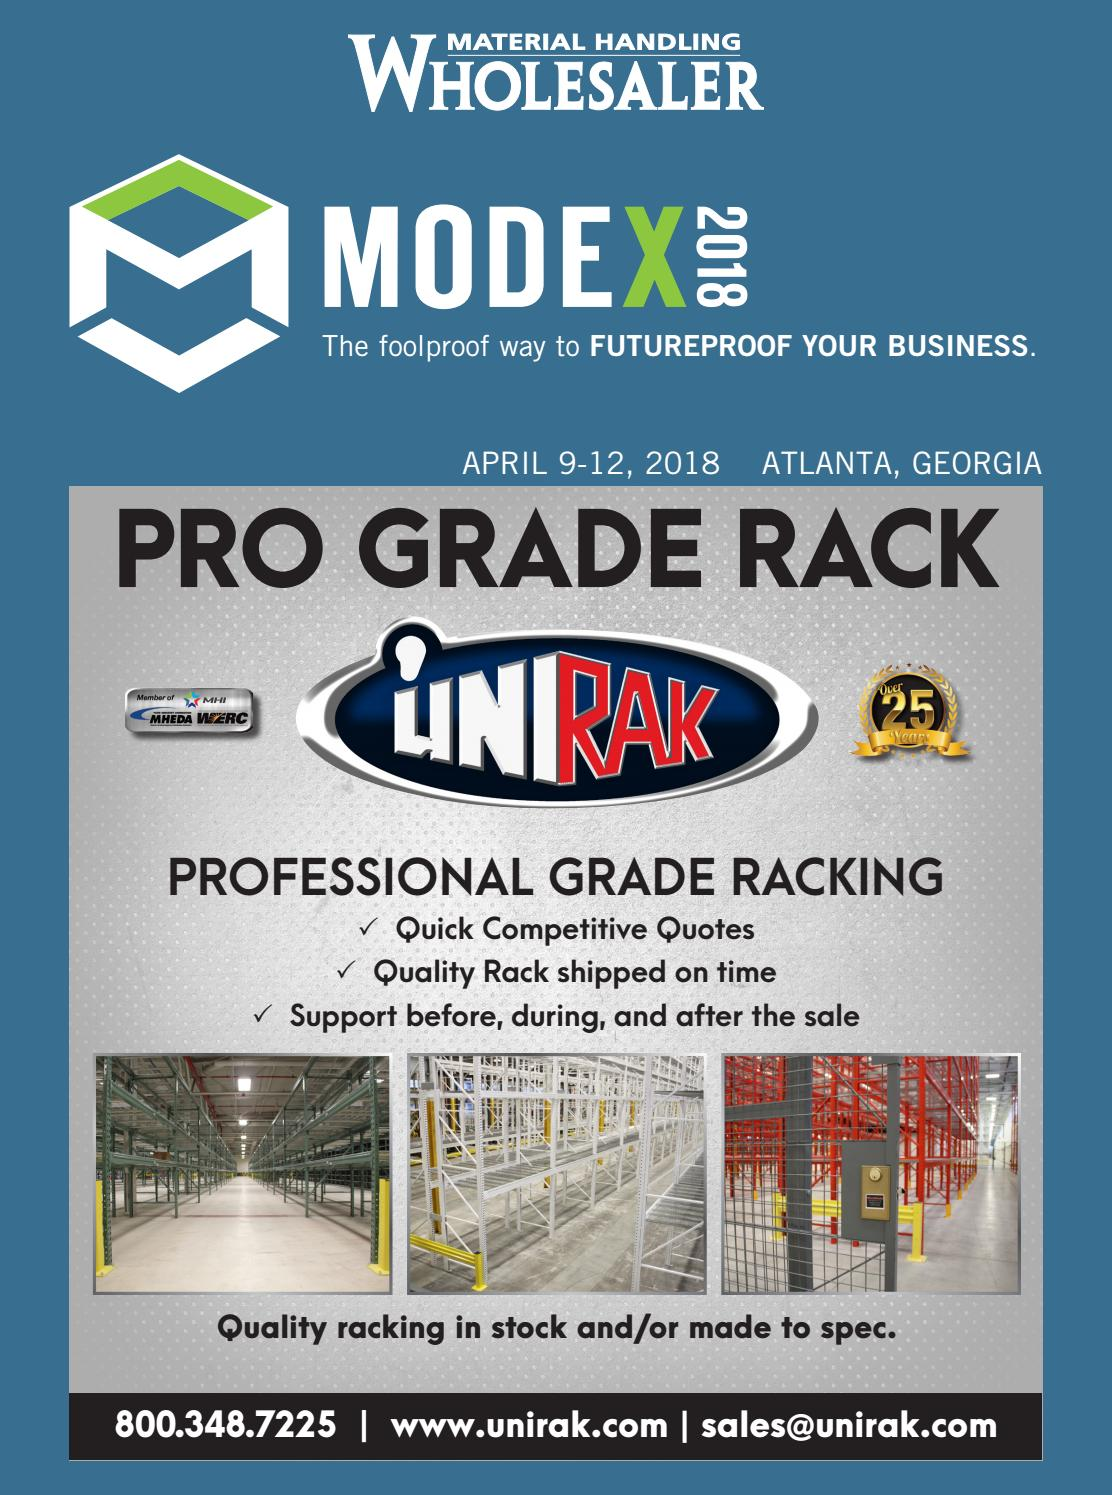 MODEX 2018 Supplement by Material Handling Wholesaler - issuu